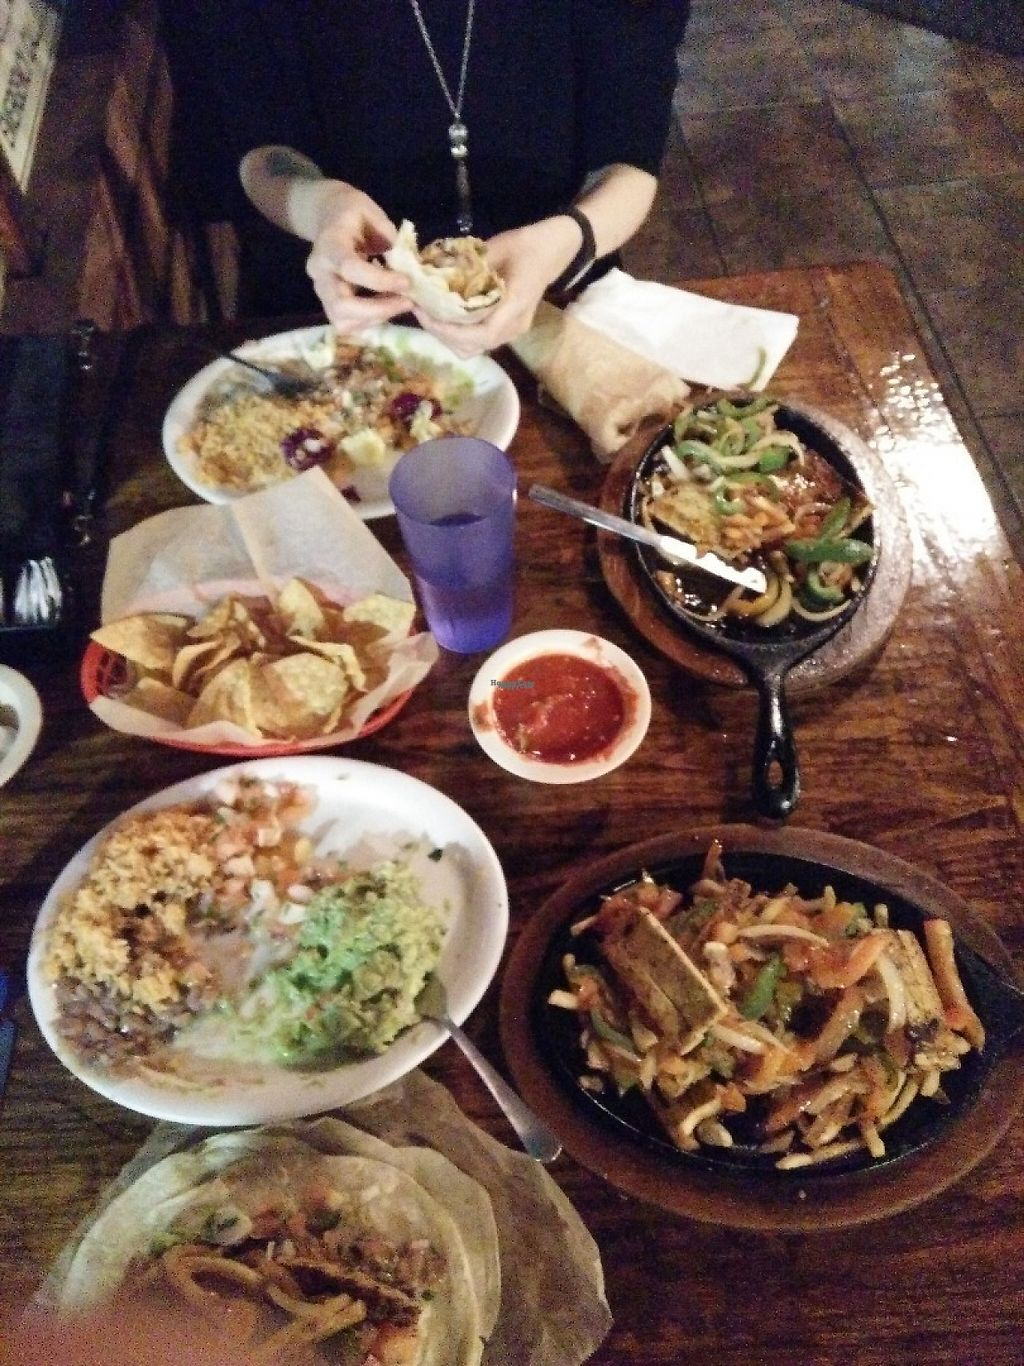 "Photo of Pokez  by <a href=""/members/profile/oleiah"">oleiah</a> <br/>Two orders of vegan fajitas for two people = way too much food! <br/> March 13, 2017  - <a href='/contact/abuse/image/3376/235956'>Report</a>"